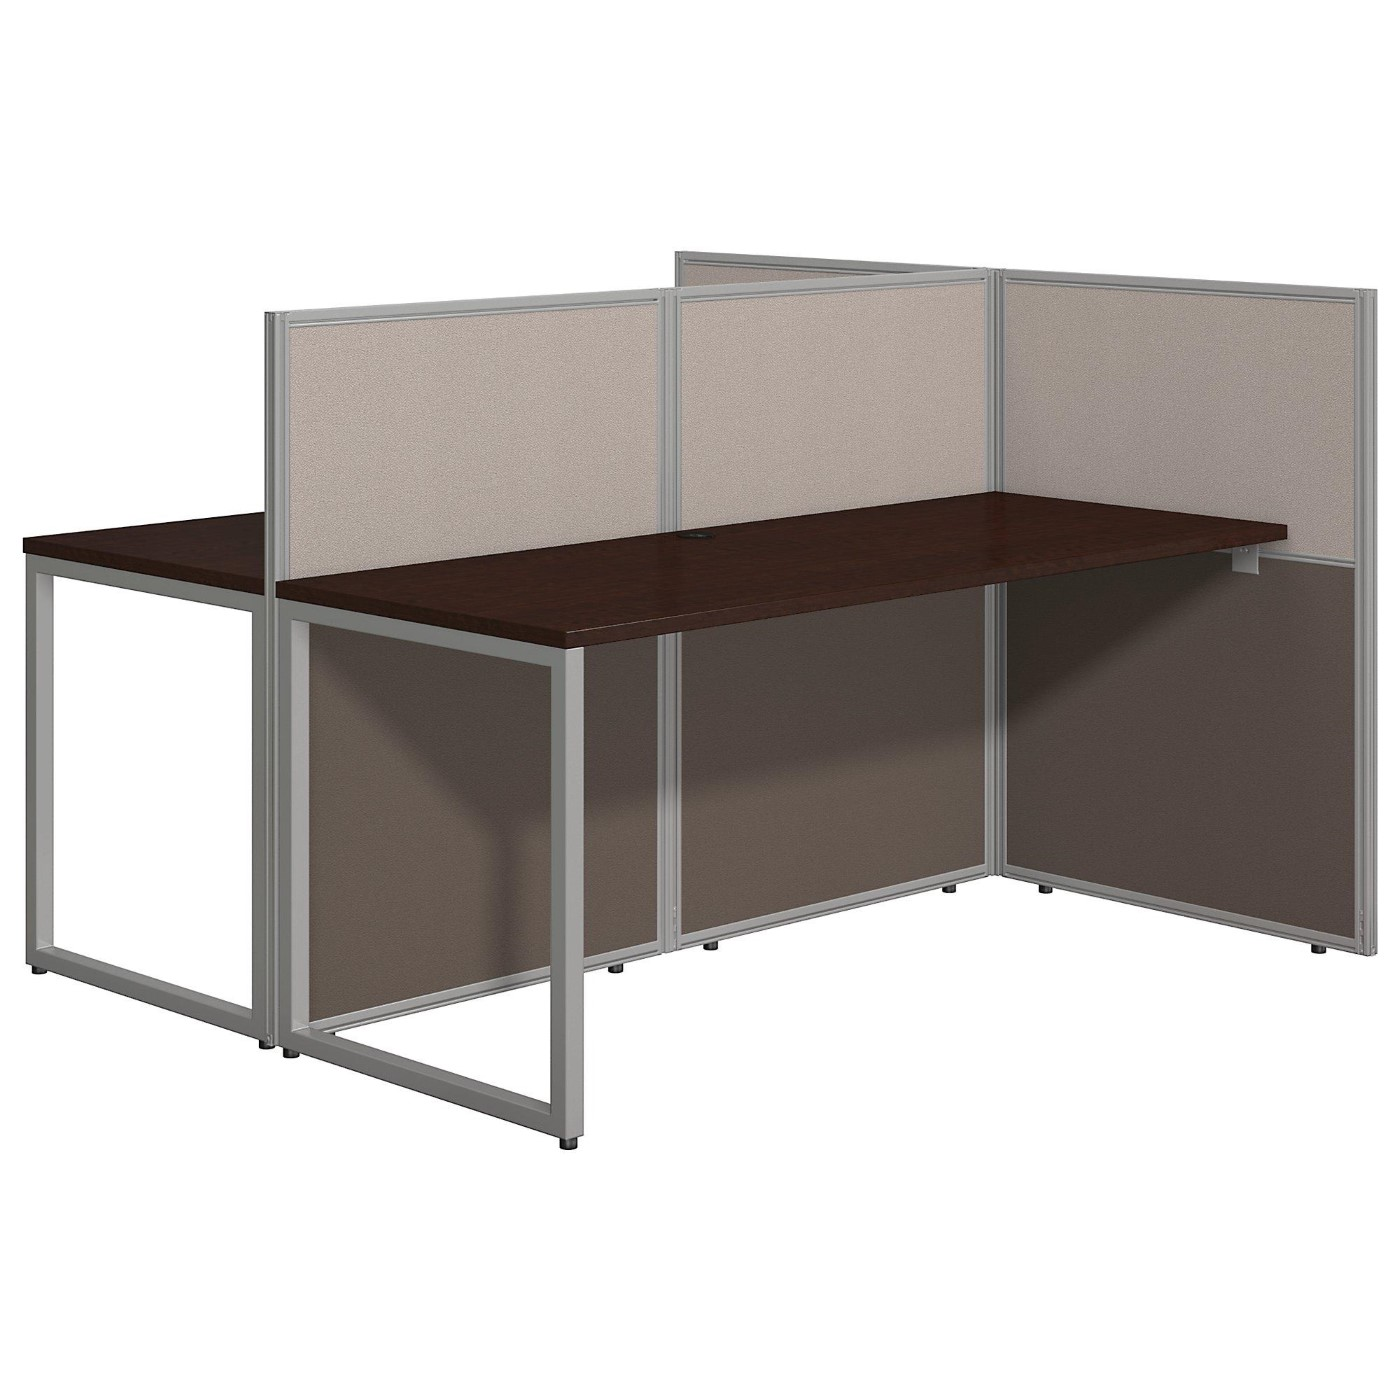 BUSH BUSINESS FURNITURE EASY OFFICE 60W TWO PERSON STRAIGHT DESK OPEN OFFICE. FREE SHIPPING.  SALE DEDUCT 10% MORE ENTER '10percent' IN COUPON CODE BOX WHILE CHECKING OUT. ENDS 5-31-20.